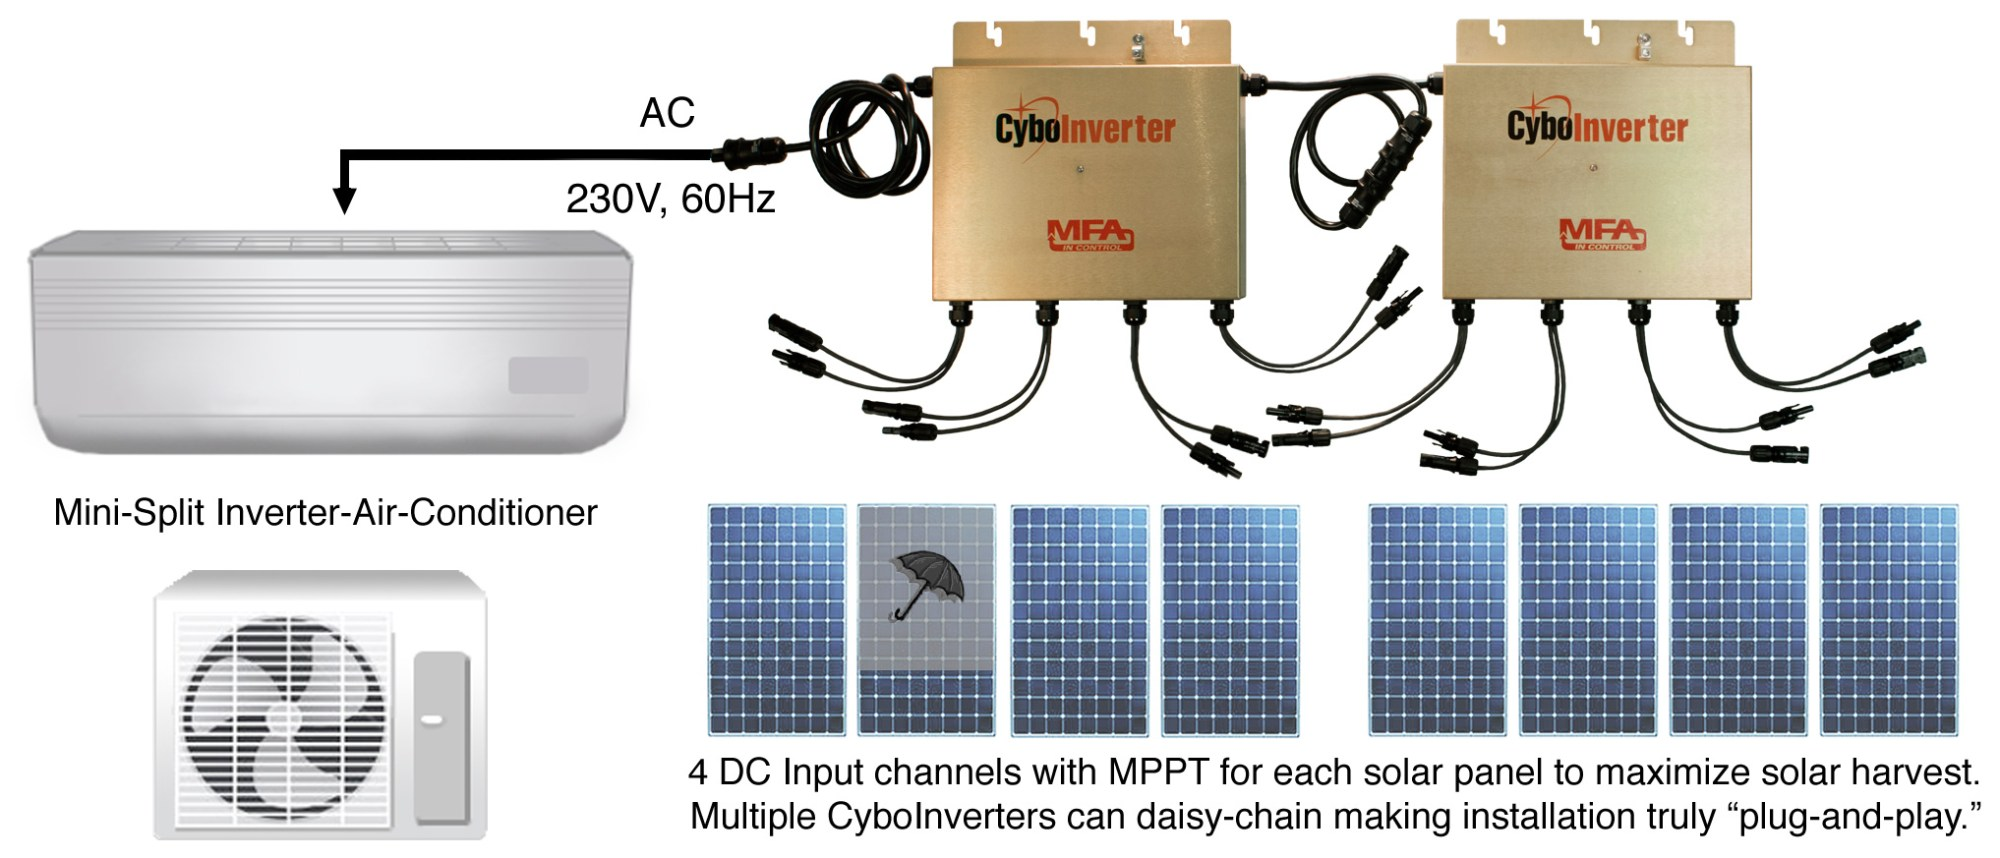 hight resolution of most off grid inverters on the market require batteries to operate this battery less solar air conditioning system is unique cost effective